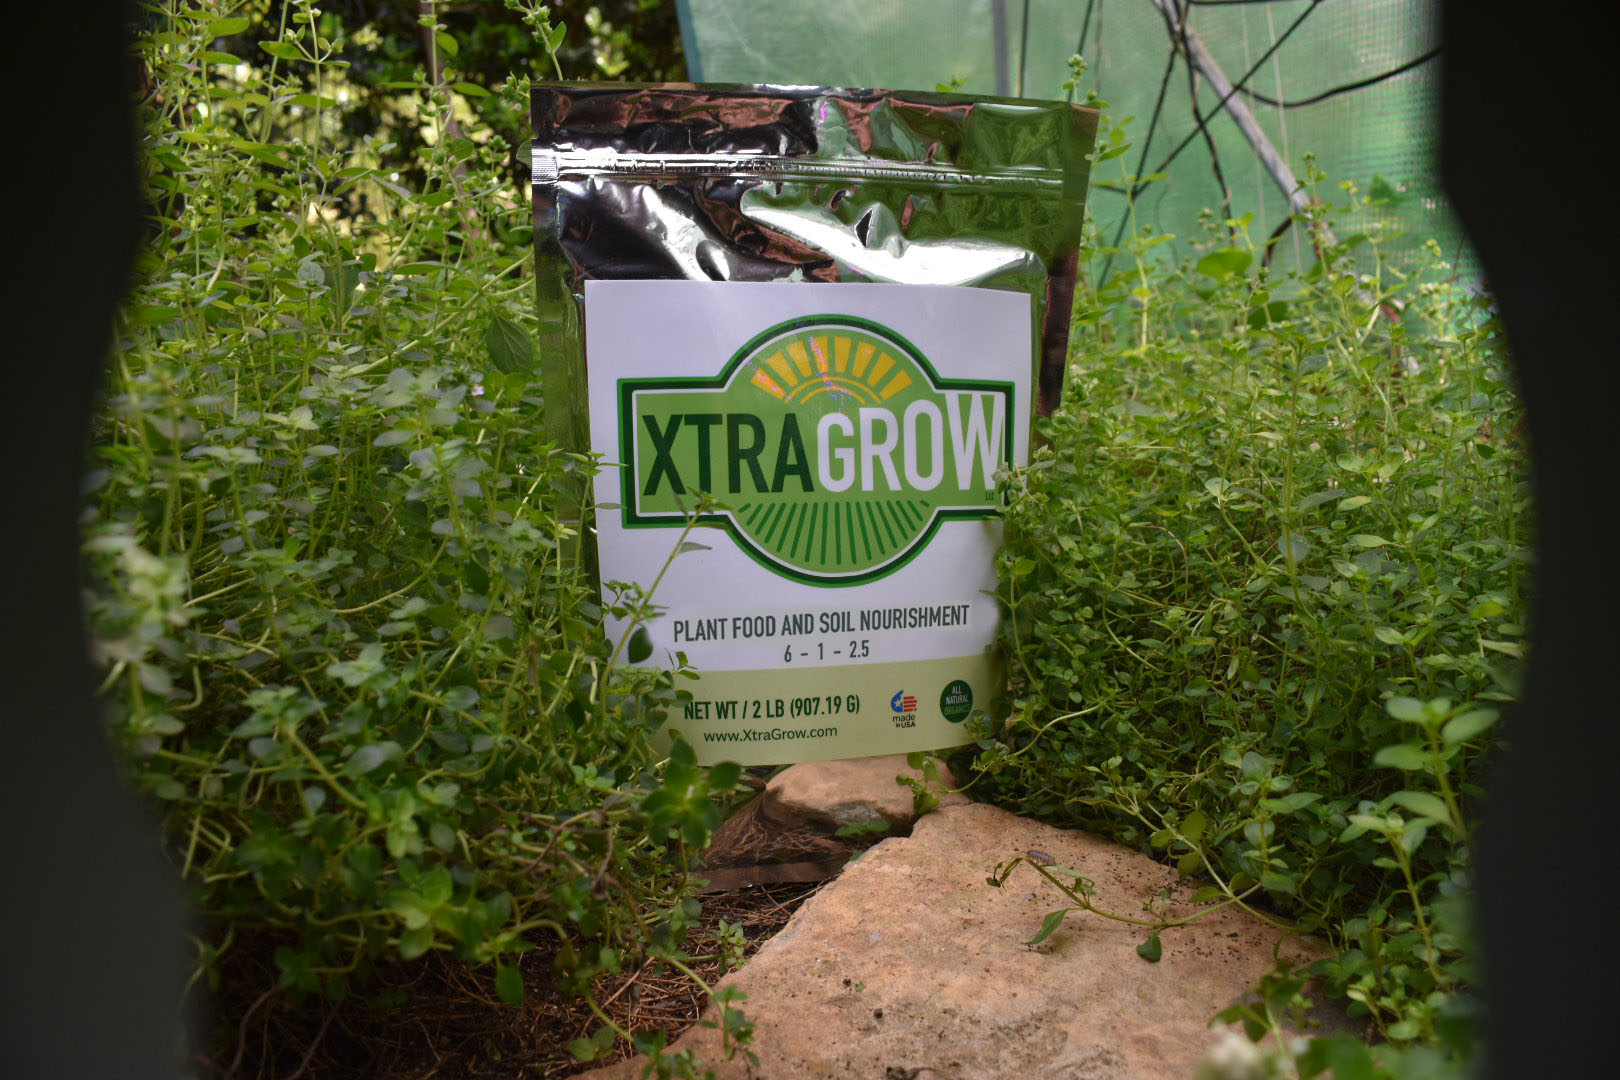 Premium Organic Plant Based Fertilizer Video Xtragrow in plants grown with Xtragrow 1